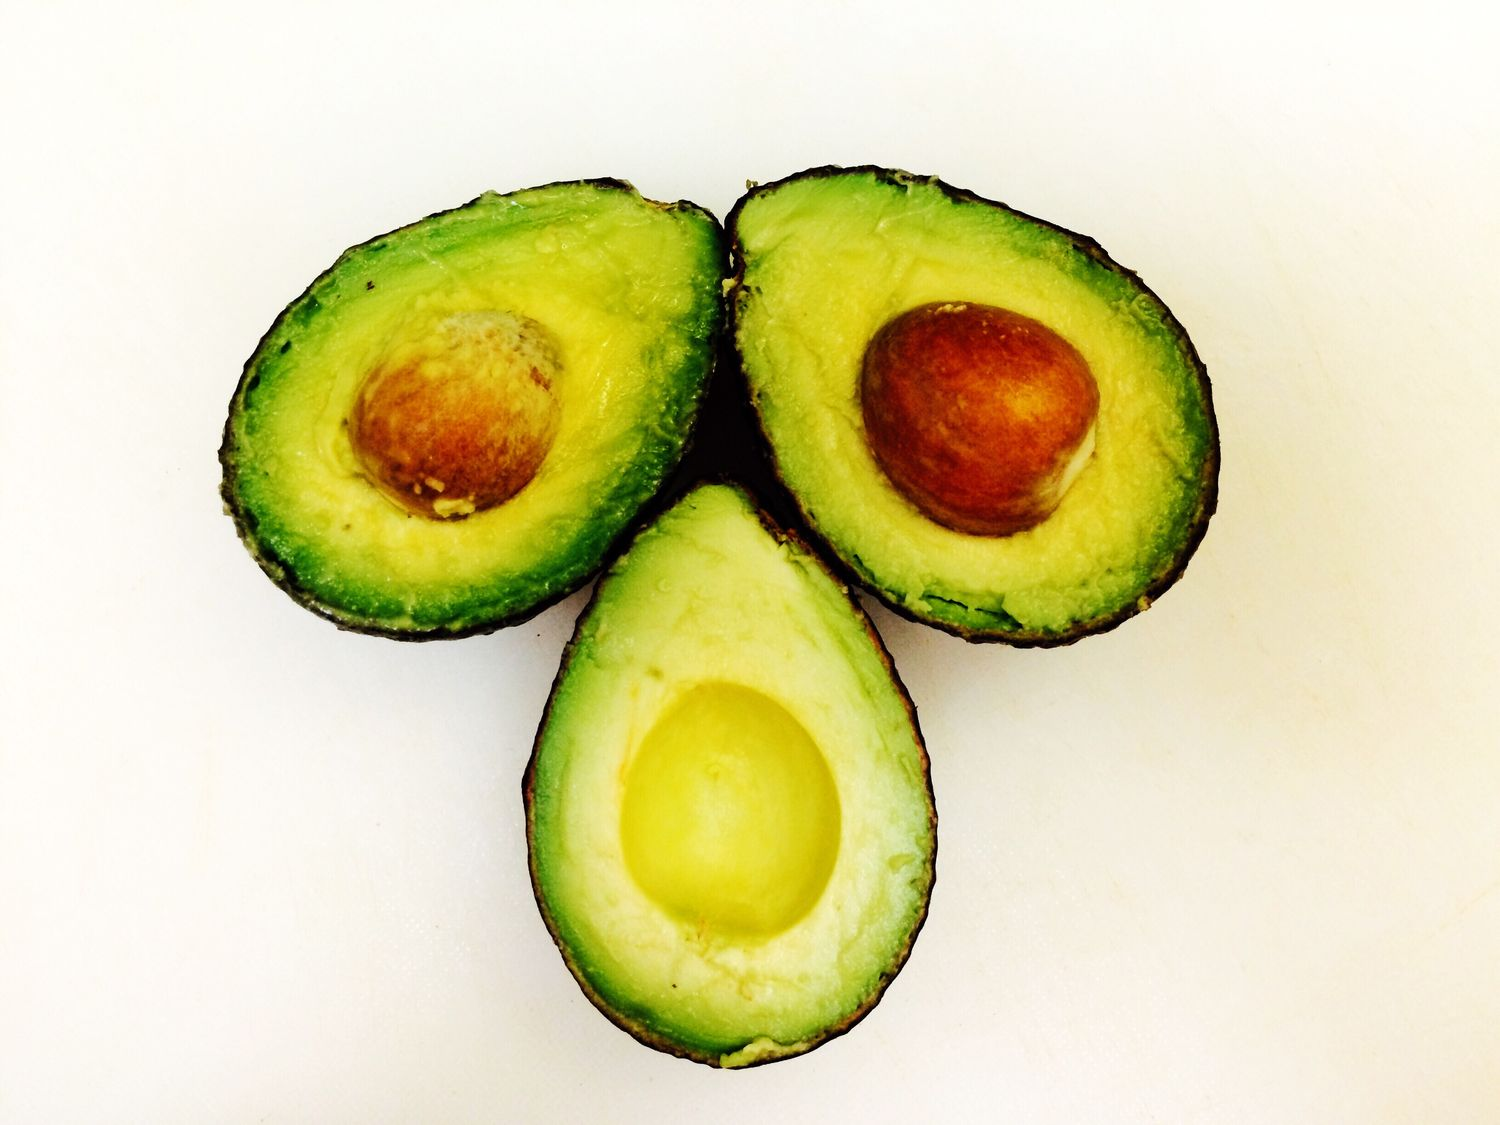 My Favorite Breakfast Moment Avocados My Healthy Breakfast Enjoying Life 😁 My Pic Of The Day